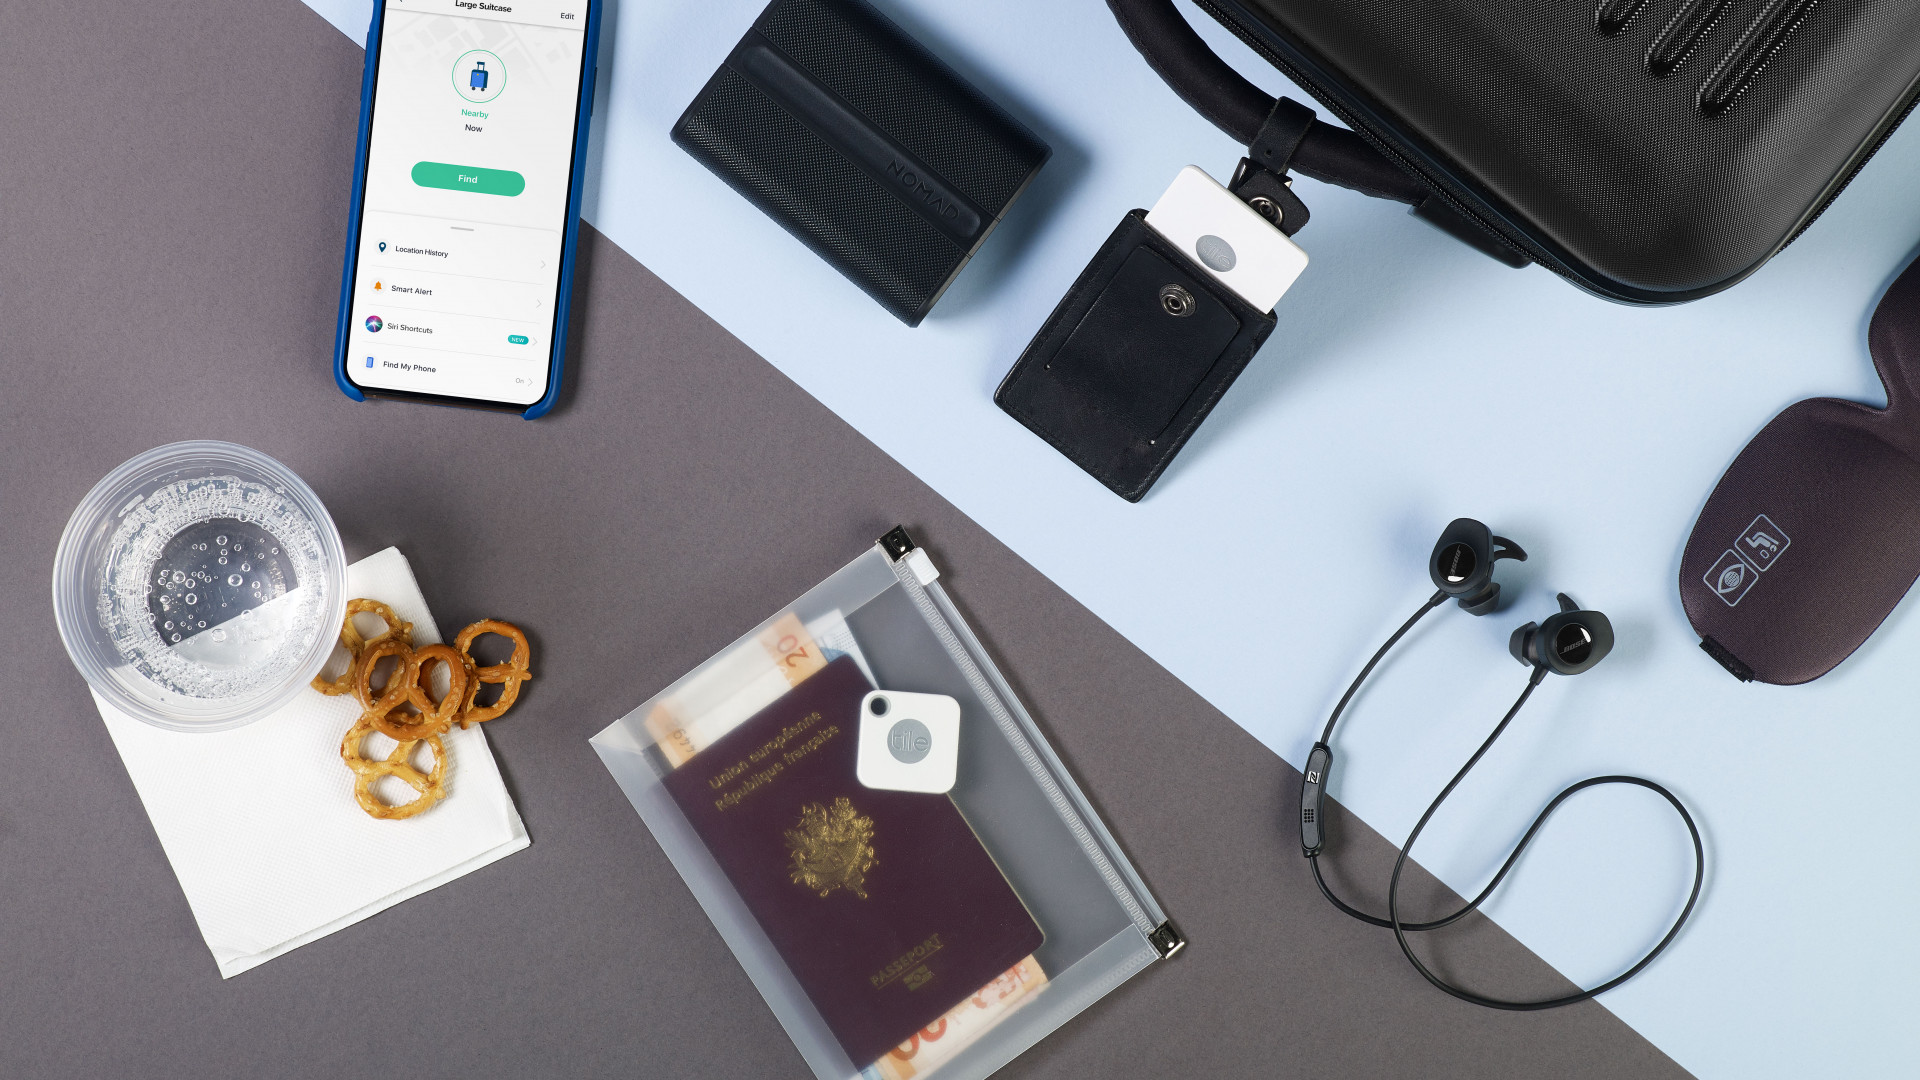 Tile Bluetooth tracker: use it to find your passport